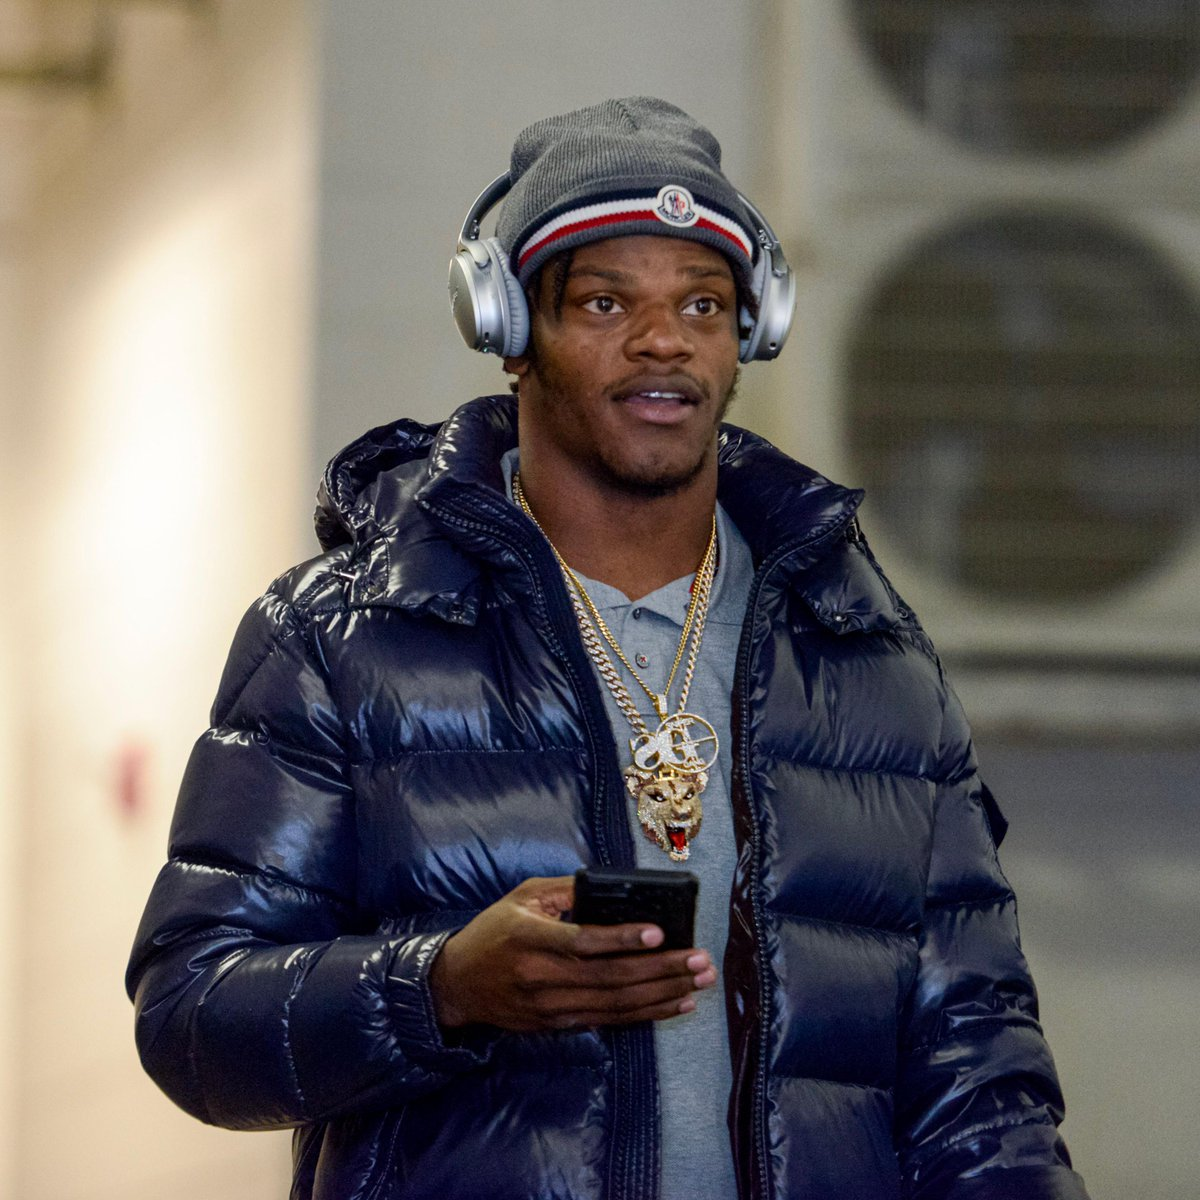 .@Lj_era8 is here and ready for battle. #HeadsUp (by @Bose)